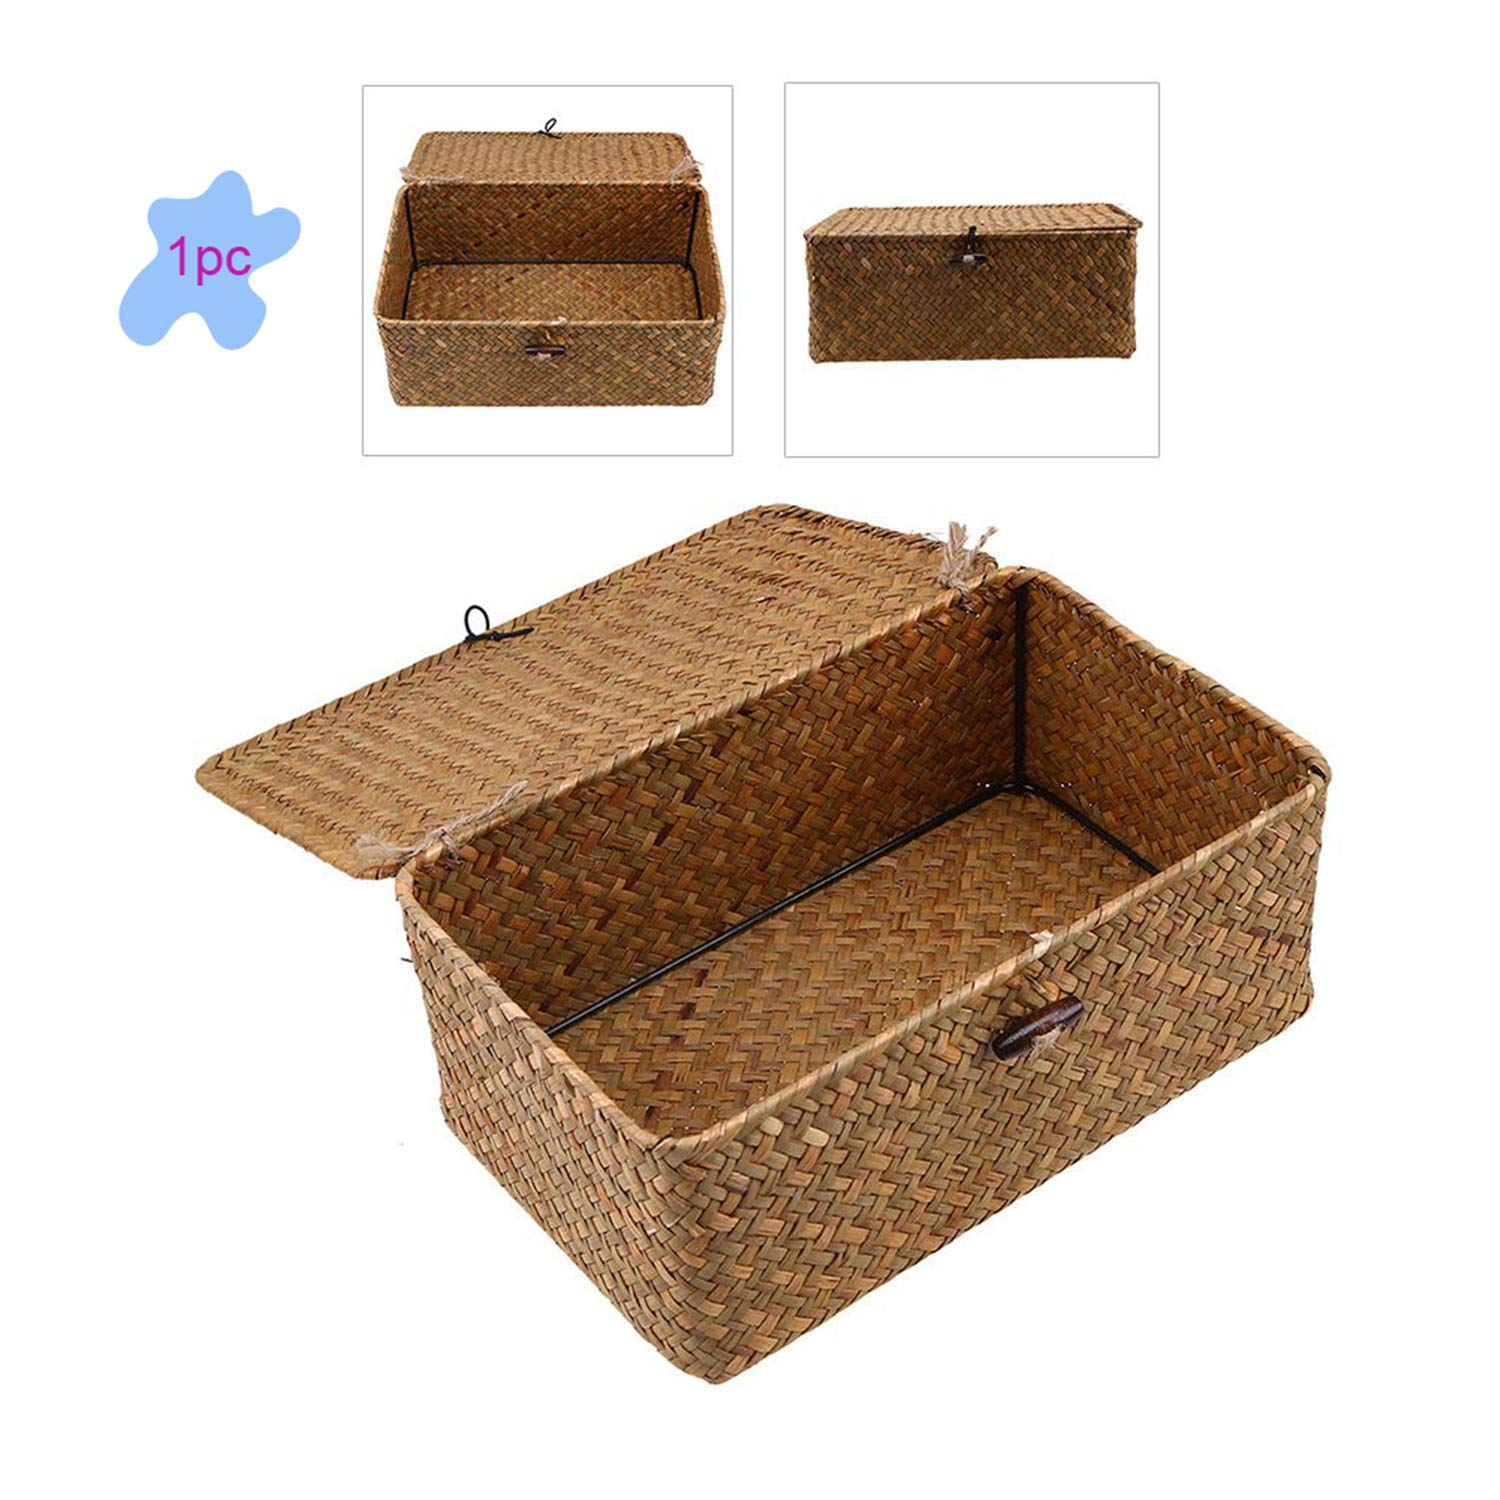 Seagrass Storage Basket Rectangular Handmade, Rattan Storage Basket with Lid for House ware Storage Multipurpose Container (S 11.4 x 7.5 x 4.7 inches)